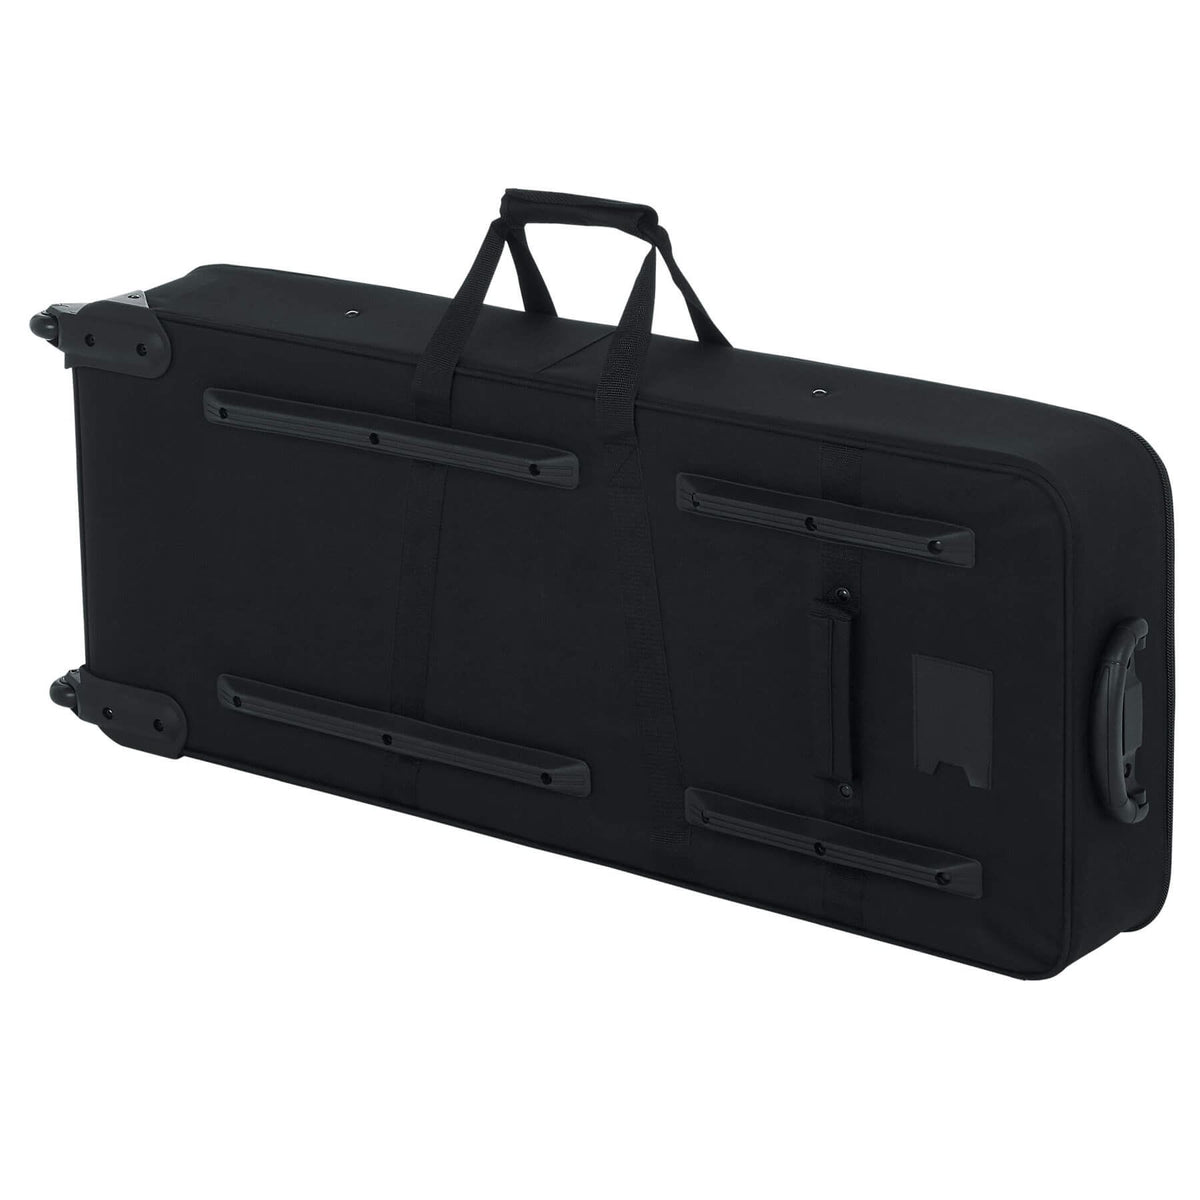 Gator Keyboard Case for Nord Lead 2, Lead 3, Lead 4, Lead 2X, Wave